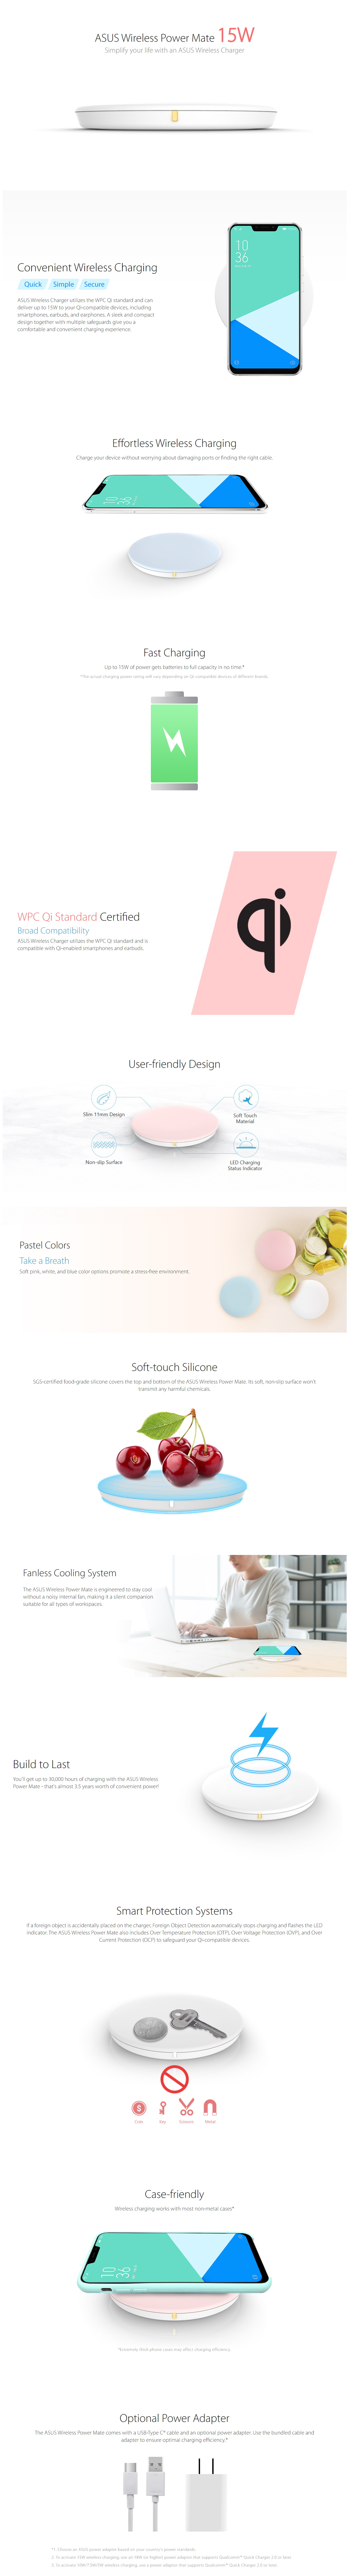 A large marketing image providing additional information about the product ASUS Wireless Power Mate White - Additional alt info not provided